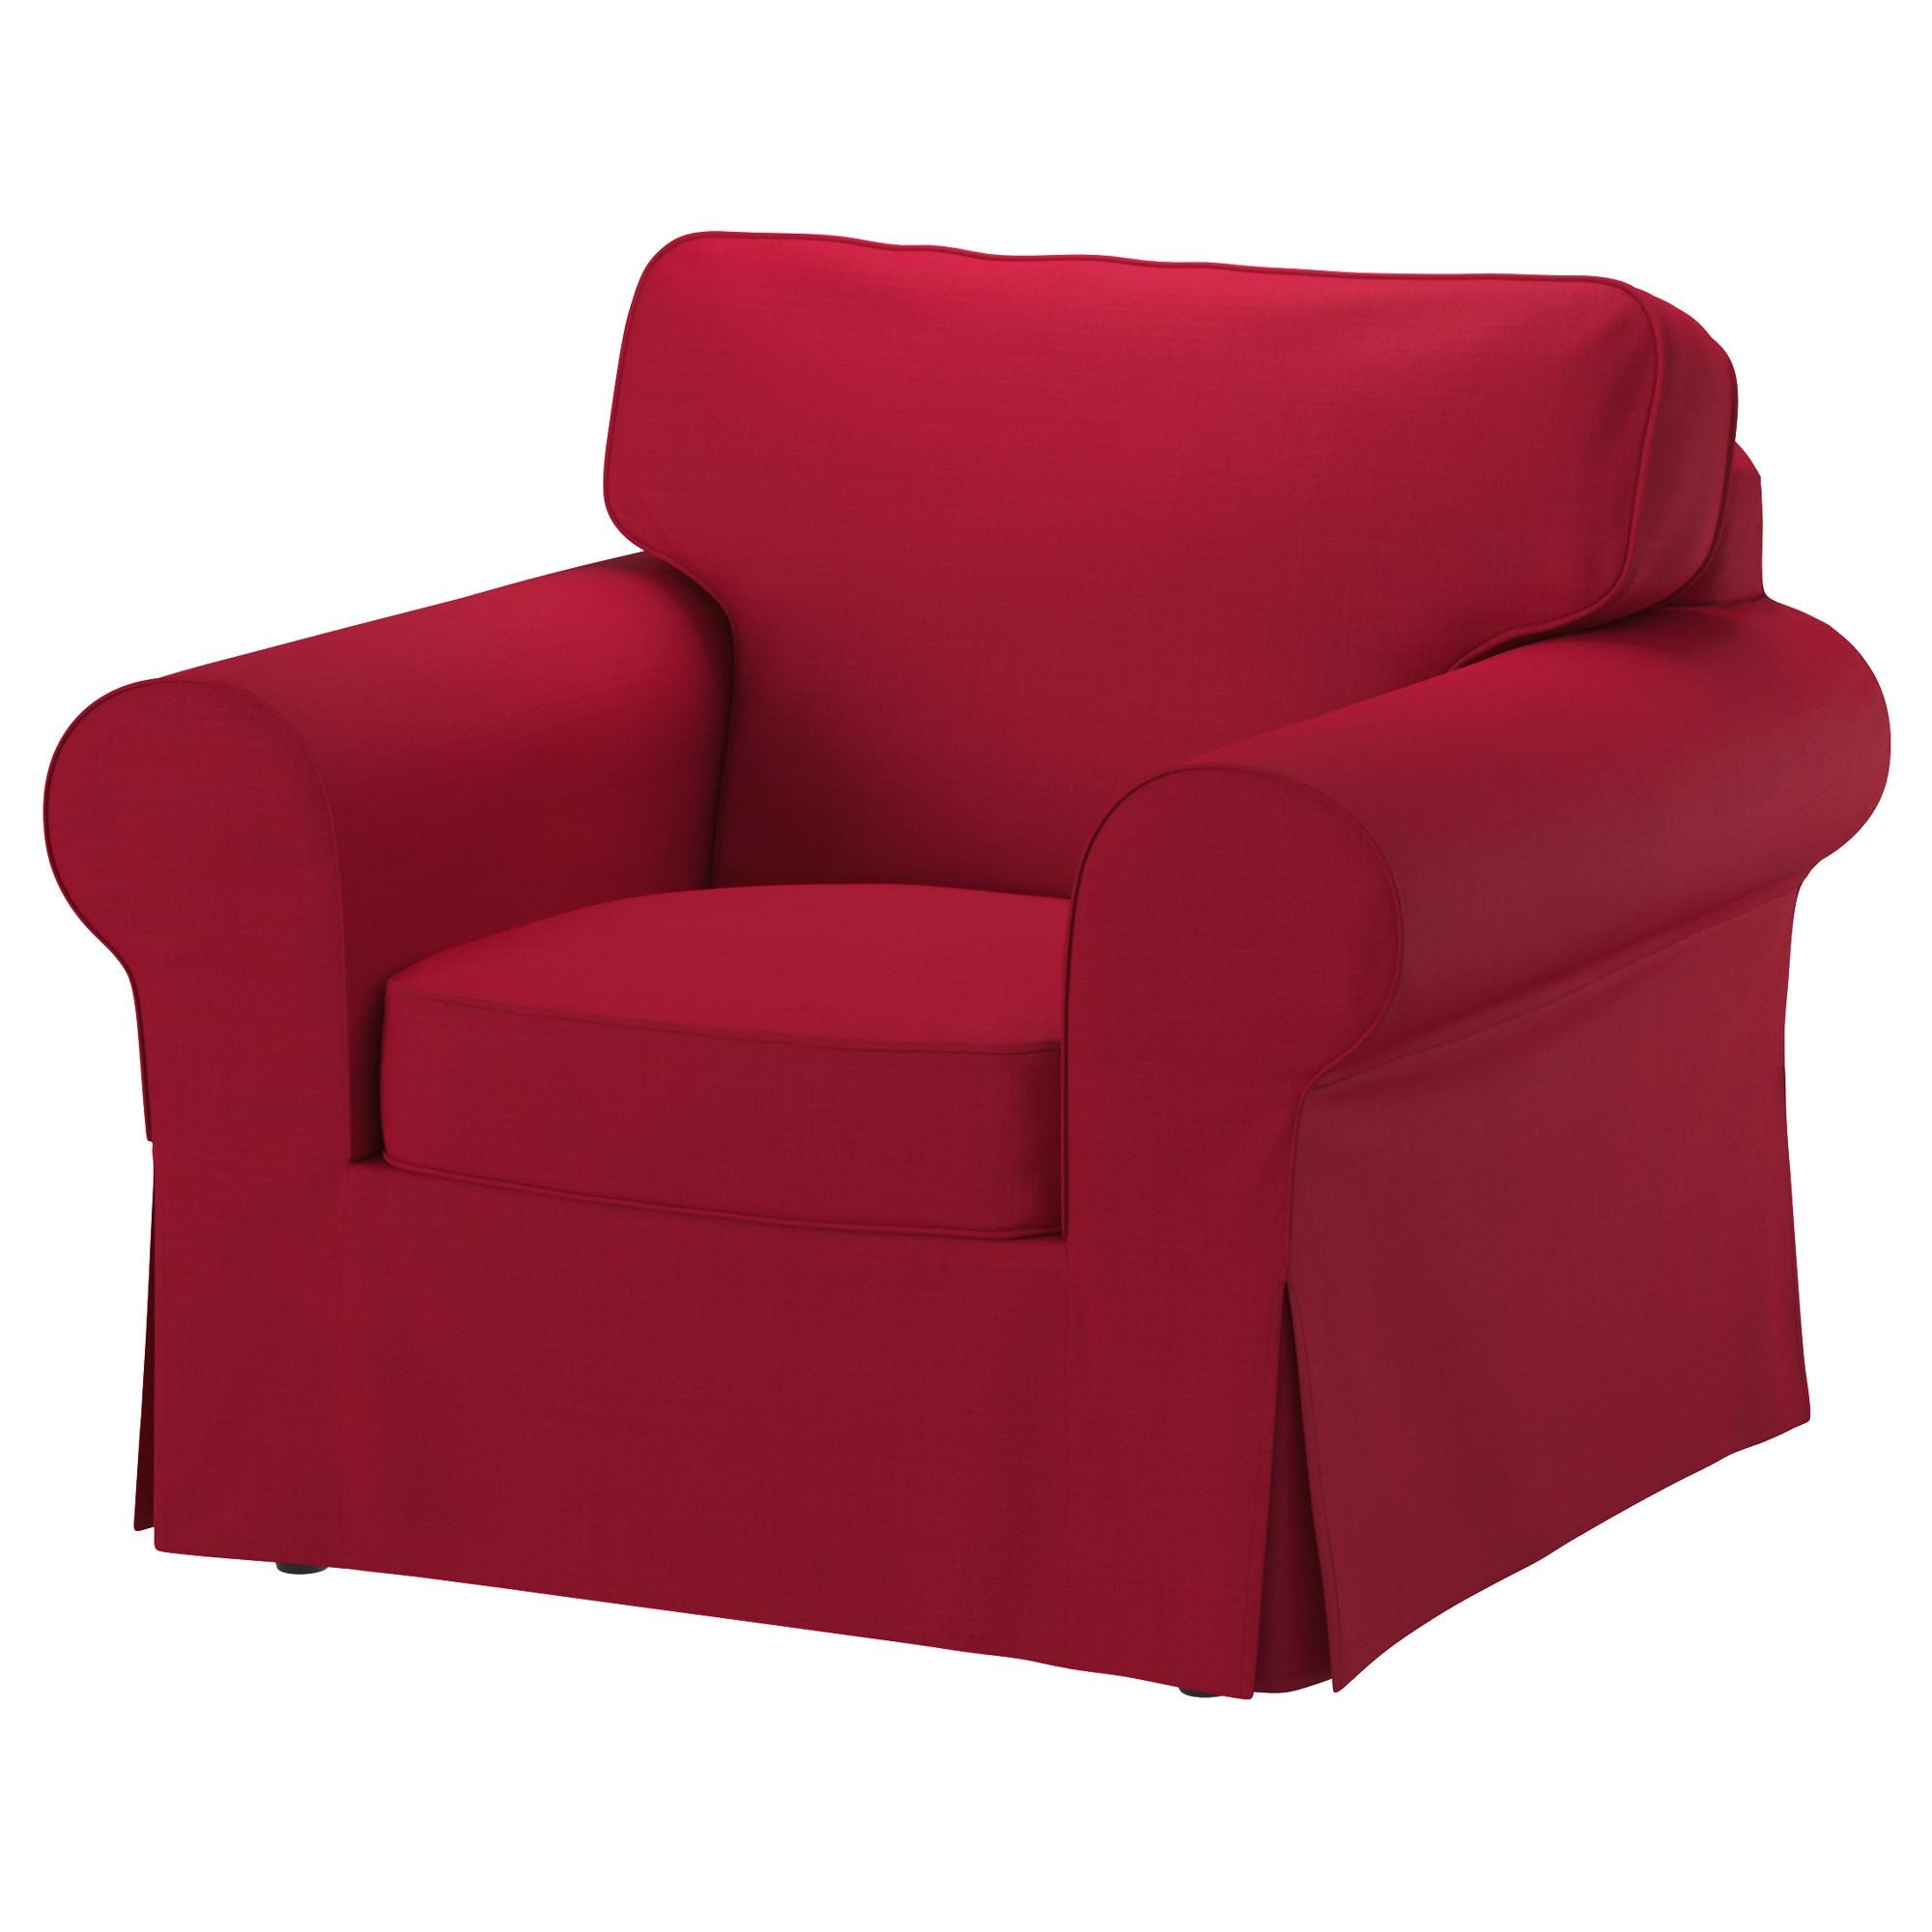 Furniture: Give Your Sofa Fresh New Look With Ikea Ektorp Chair With Regard To Red Sofas And Chairs (Image 6 of 20)